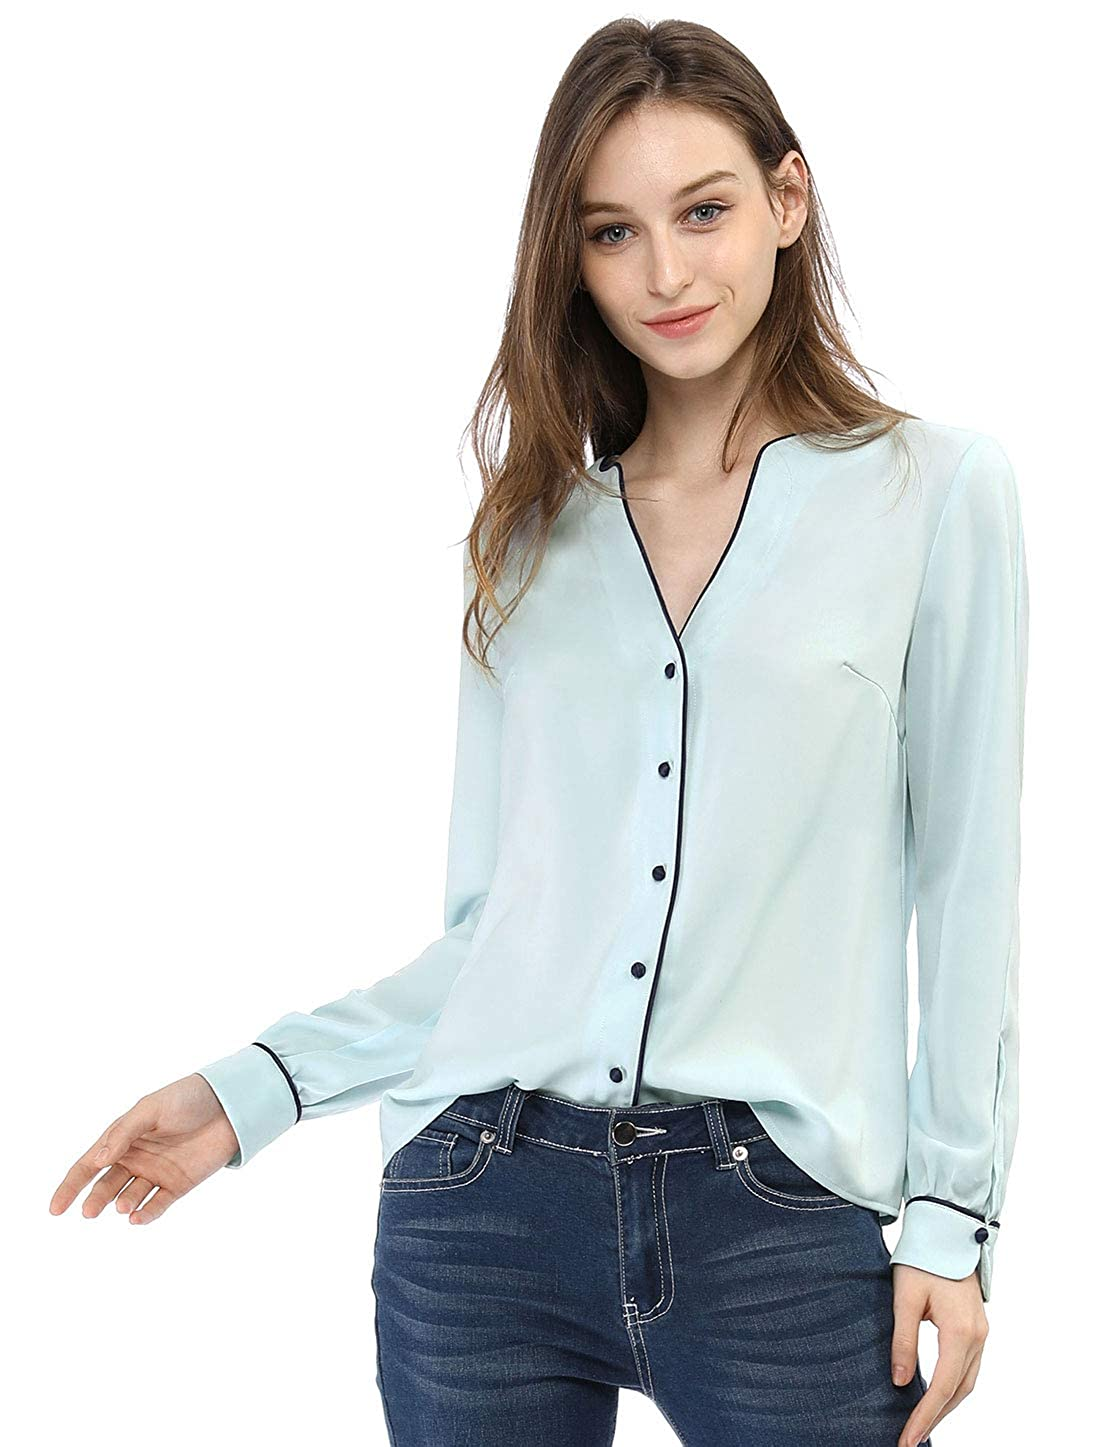 add6d9b465c Allegra K Women s Button Down Long Sleeve Contrast Trim V Neck Elegant  Blouses Tops at Amazon Women s Clothing store